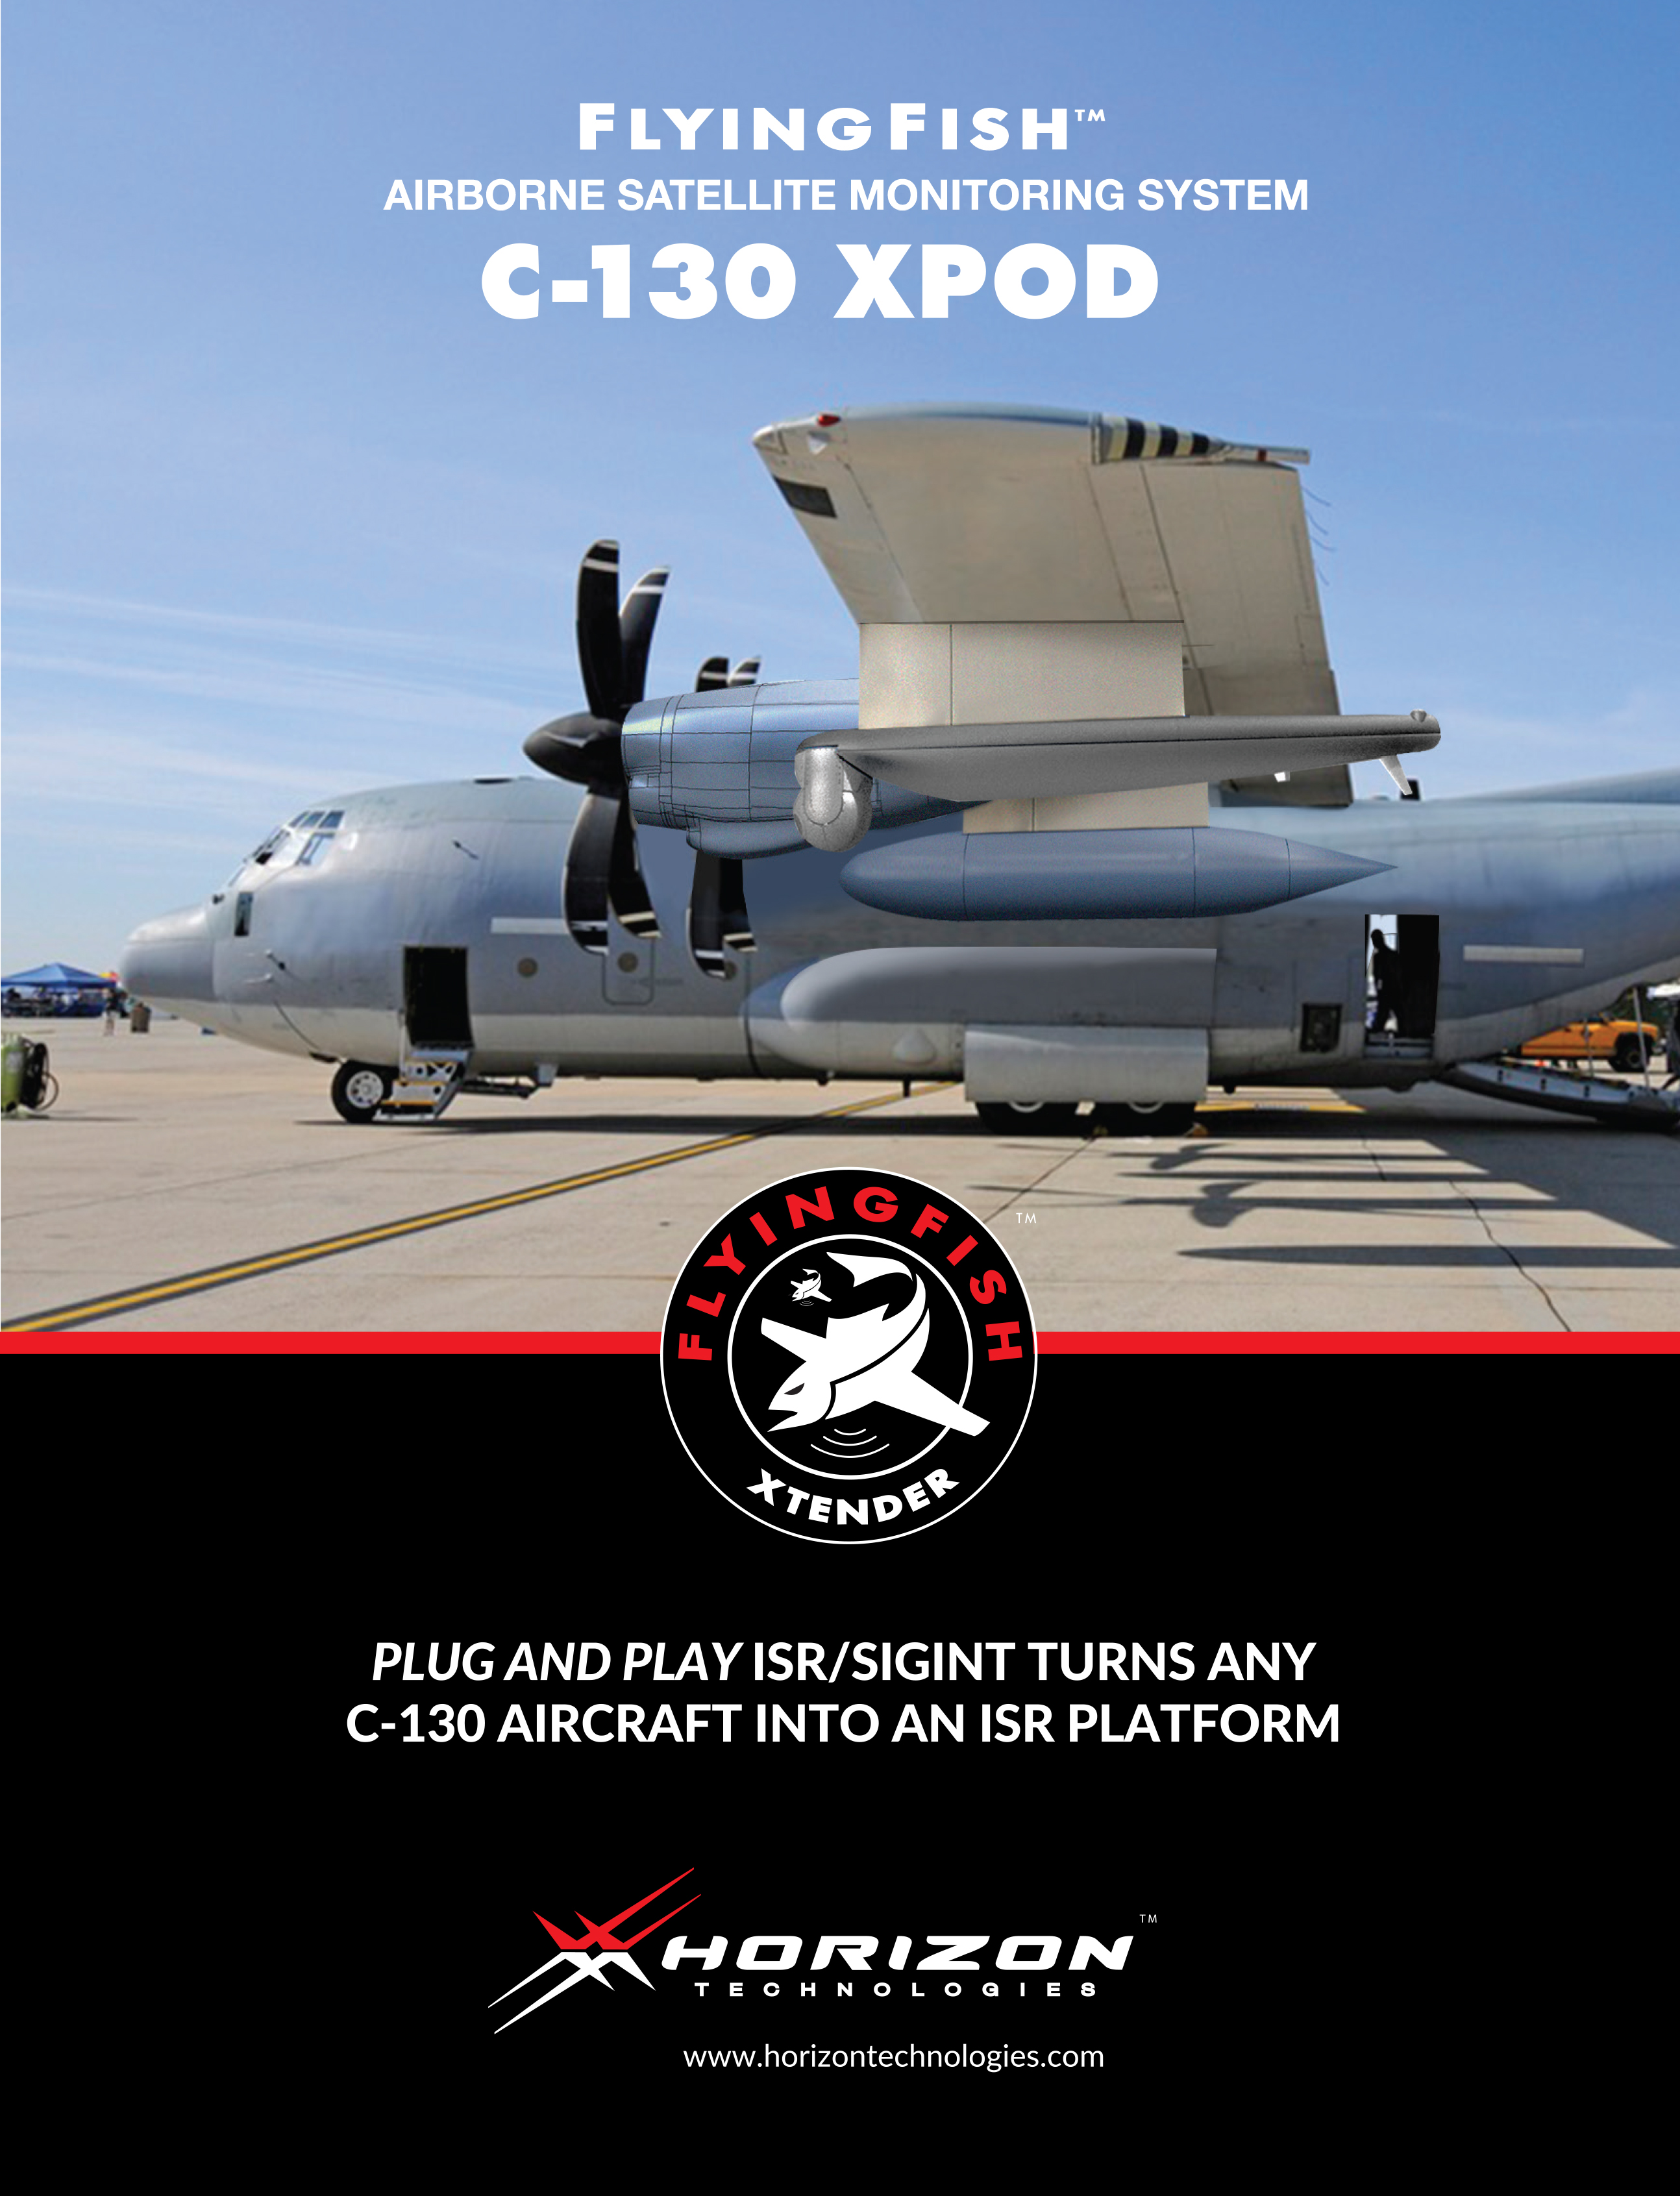 Xpod is a plug and play ISR/SIGINT system which turns any C-130 aircraft into an ISR platform.